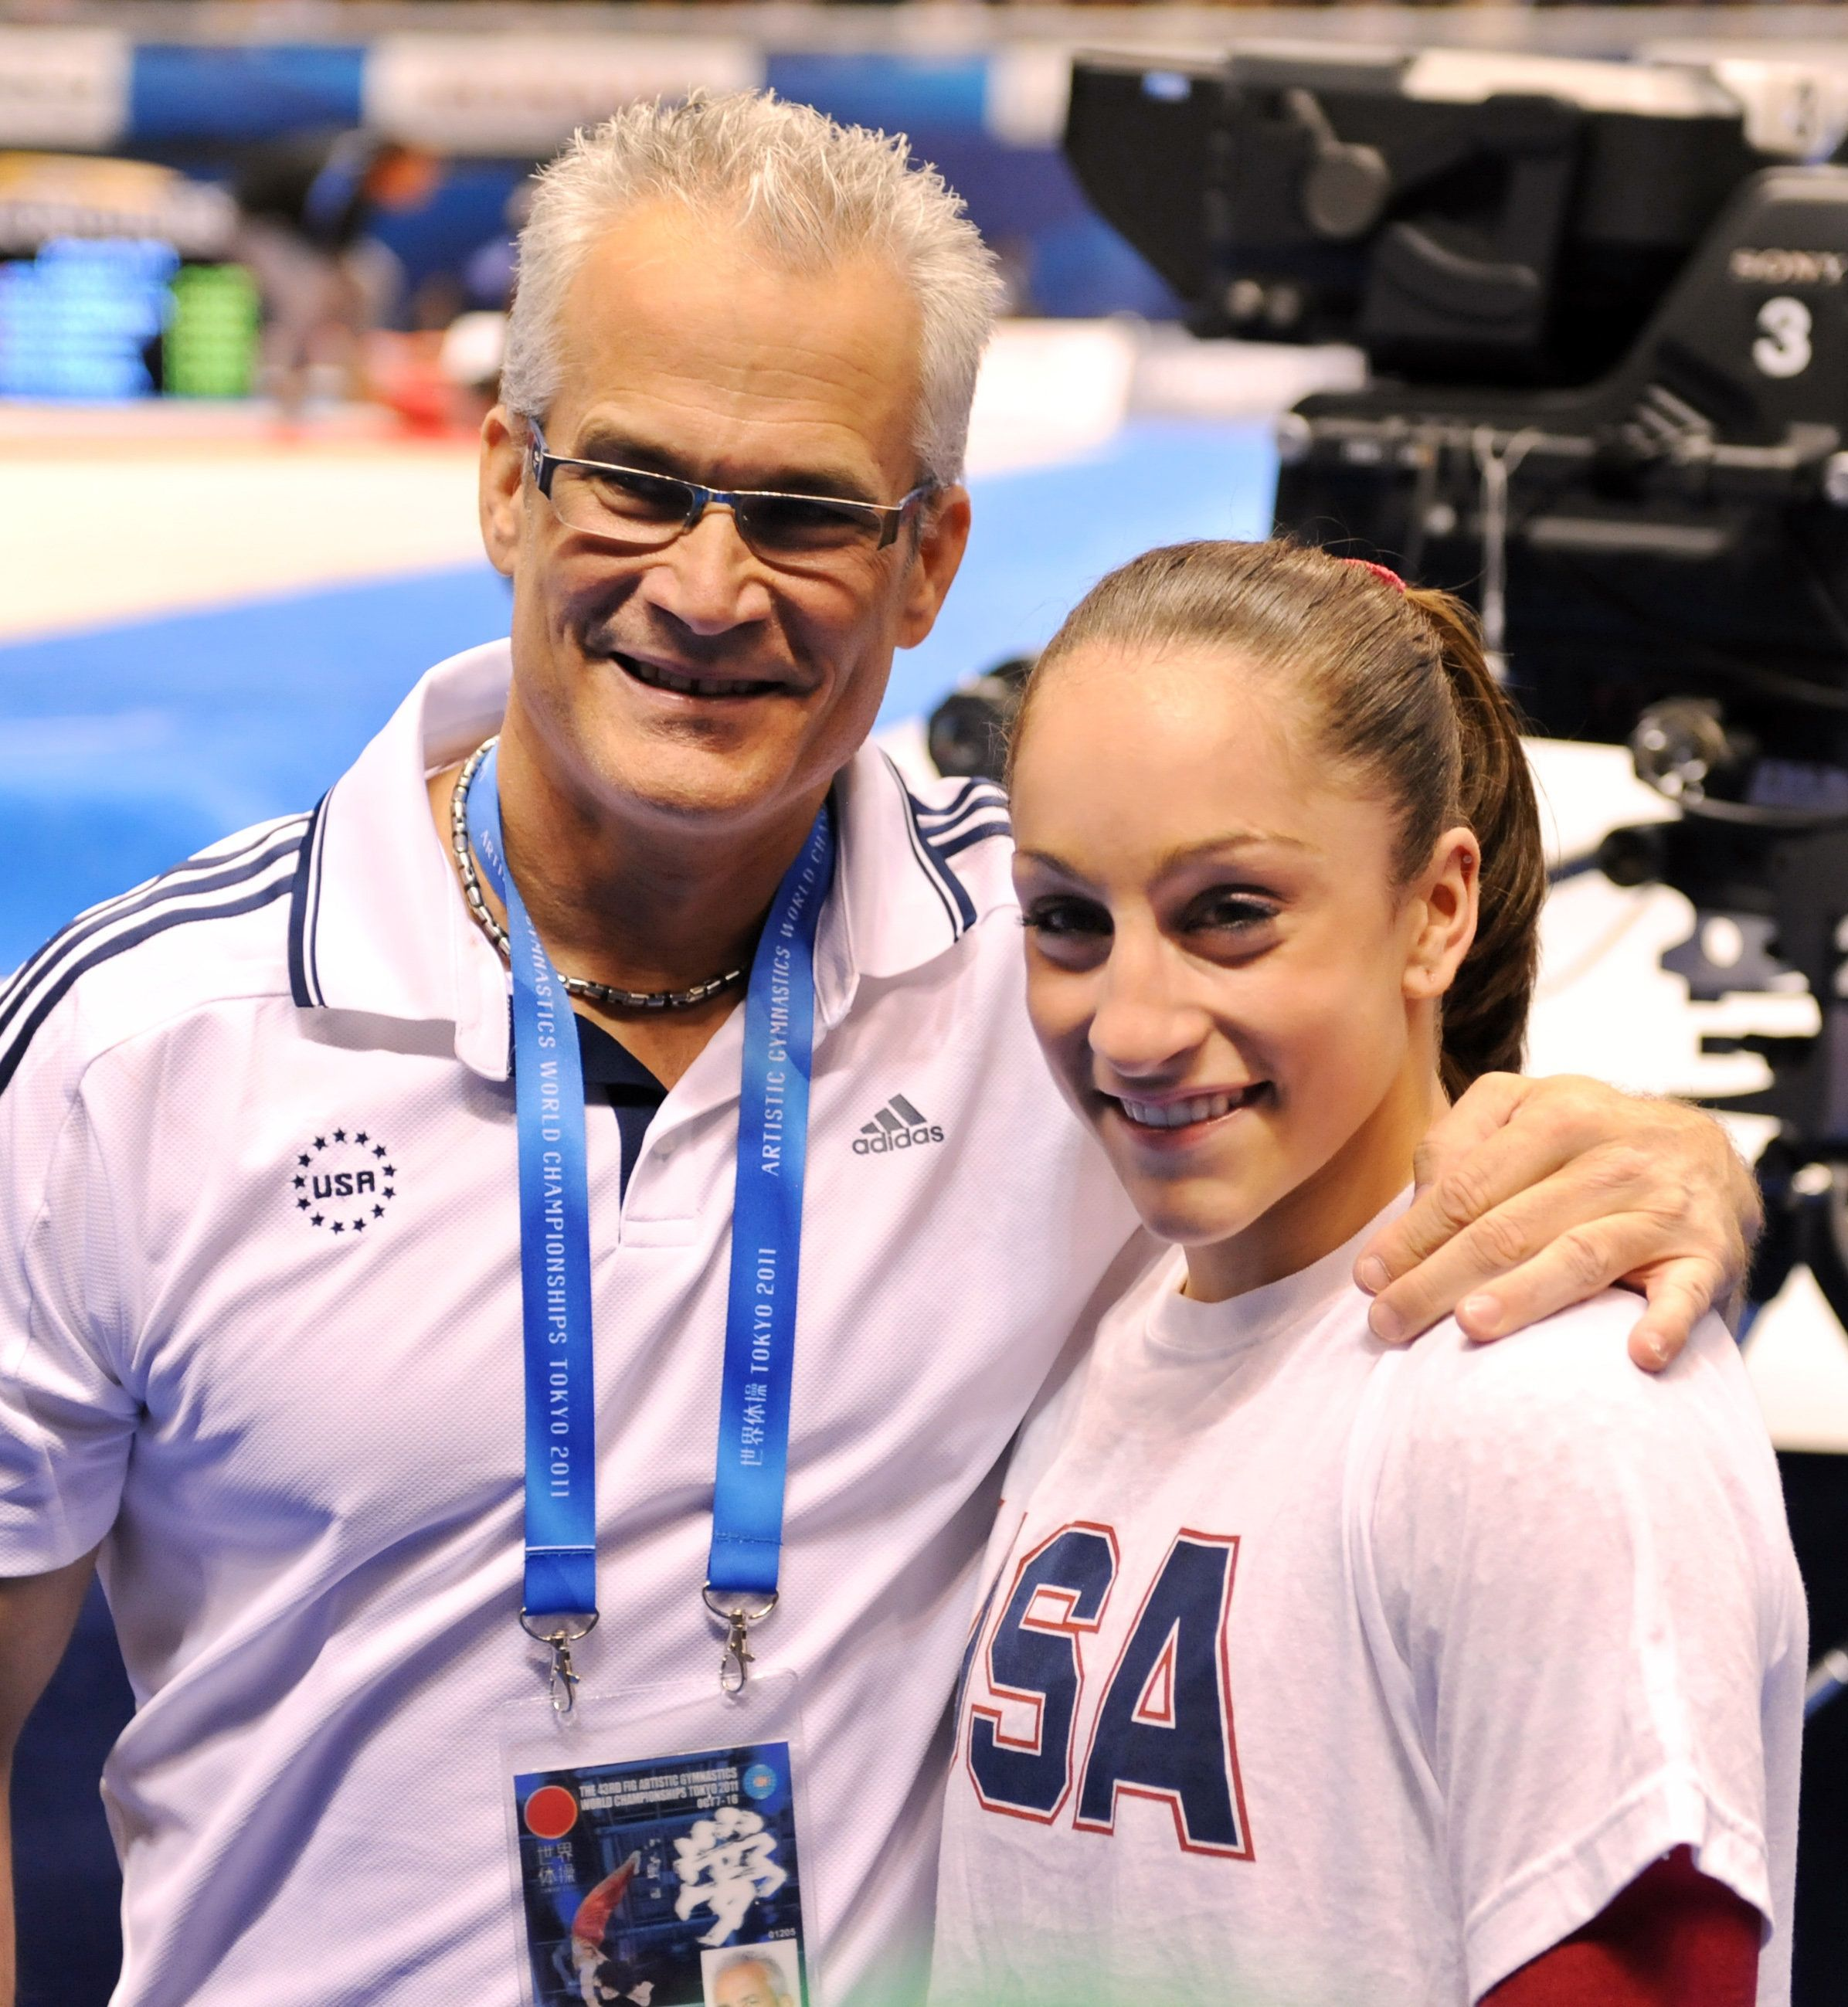 Jordyn Wieber of the US (R) celebrates her victory with her coach John Geddert in the women's all-around final at the World Gymnastics Championships in Tokyo on October 13, 2011.  Wieber won the women's all-around title at the world gymnastics championships with a dramatic comeback in the final event.    AFP PHOTO/KAZUHIRO NOGI (Photo credit should read KAZUHIRO NOGI/AFP/Getty Images)